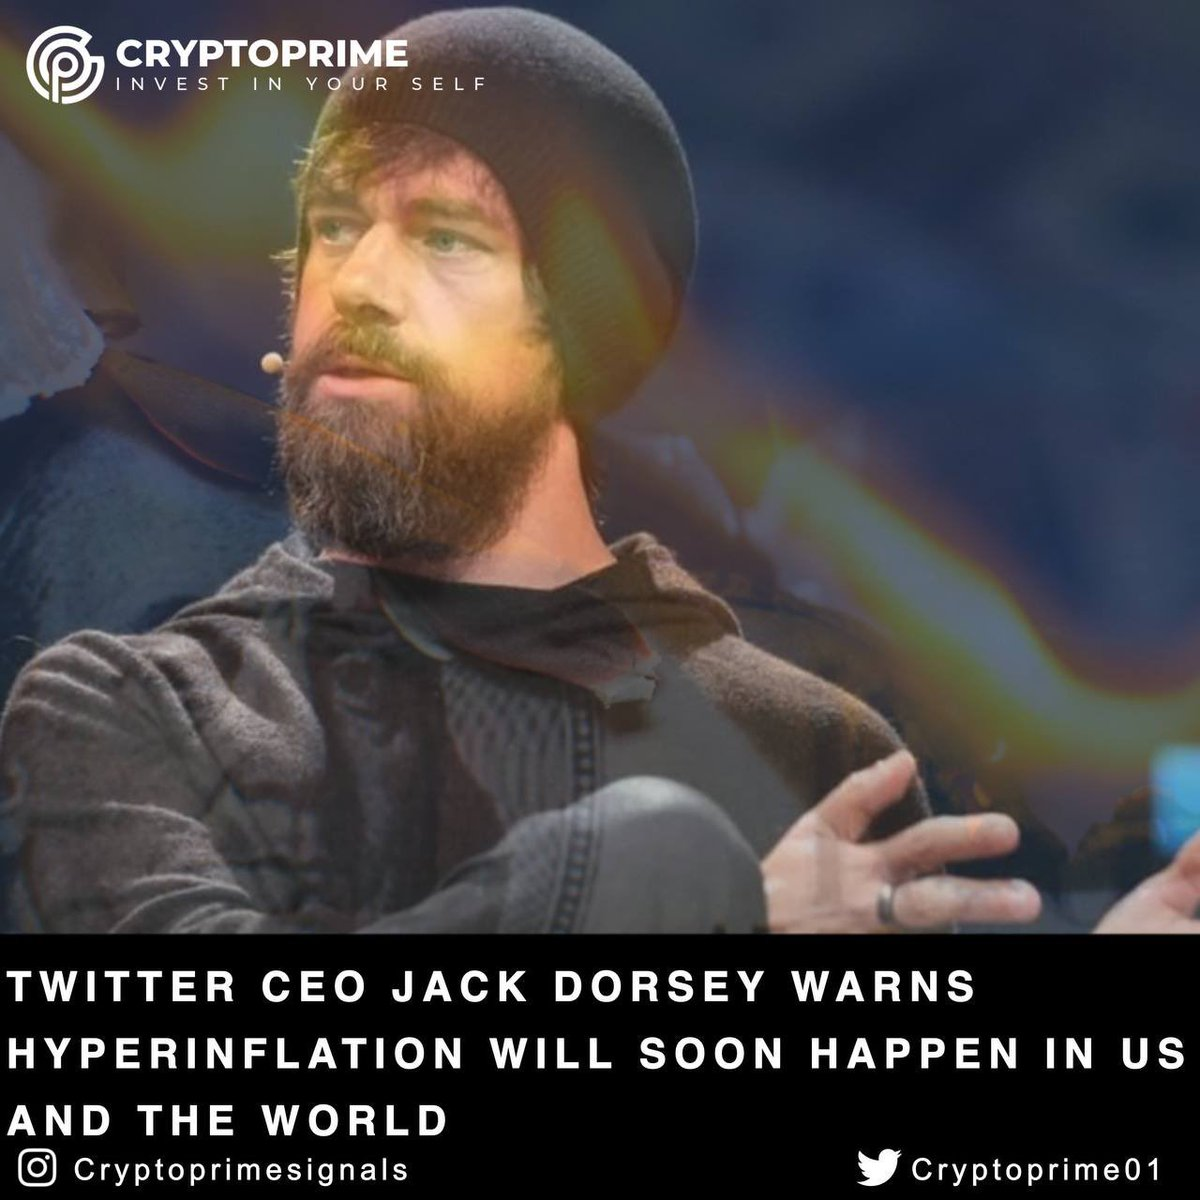 #Twitter CEO Jack Dorsey Warns Hyperinflation Will Soon Happen in US and the World  Read More:   #cryptocurrency #bitcoin #blockchain #crypto #btc #ico #ethereum #wallet #airdrop #cryptocurrencynews #cryptoexchange #trading #cryptotrading #love #followback